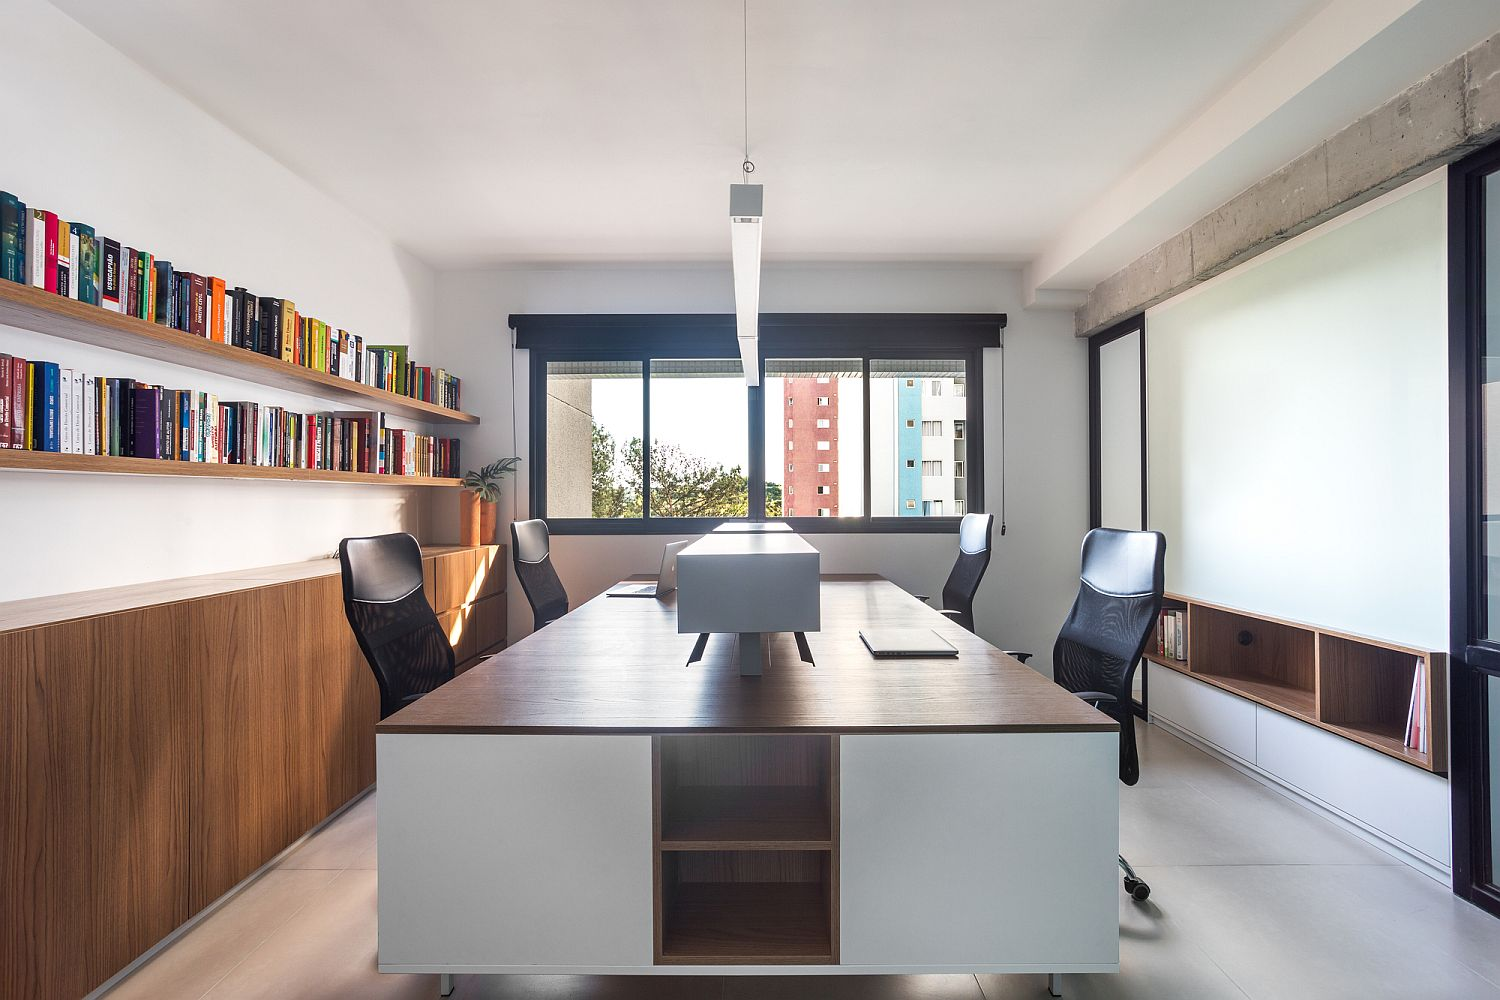 Window brings natural light into the meeting room